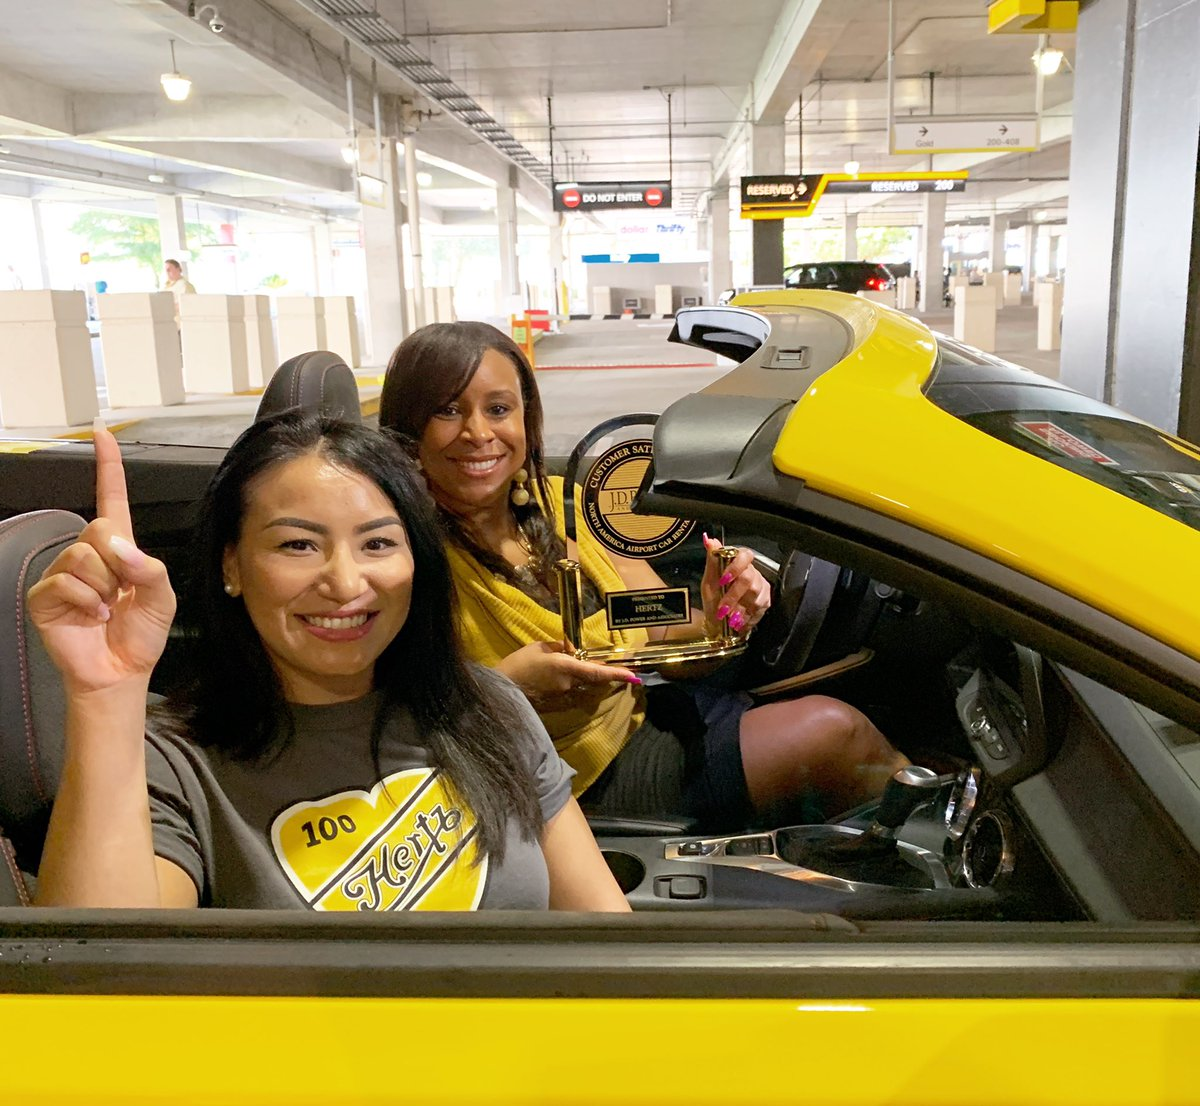 We're thrilled to announce Hertz is ranked #1 in Rental Car Customer Satisfaction by J.D. Power – and it's all thanks to you! #1Hertz